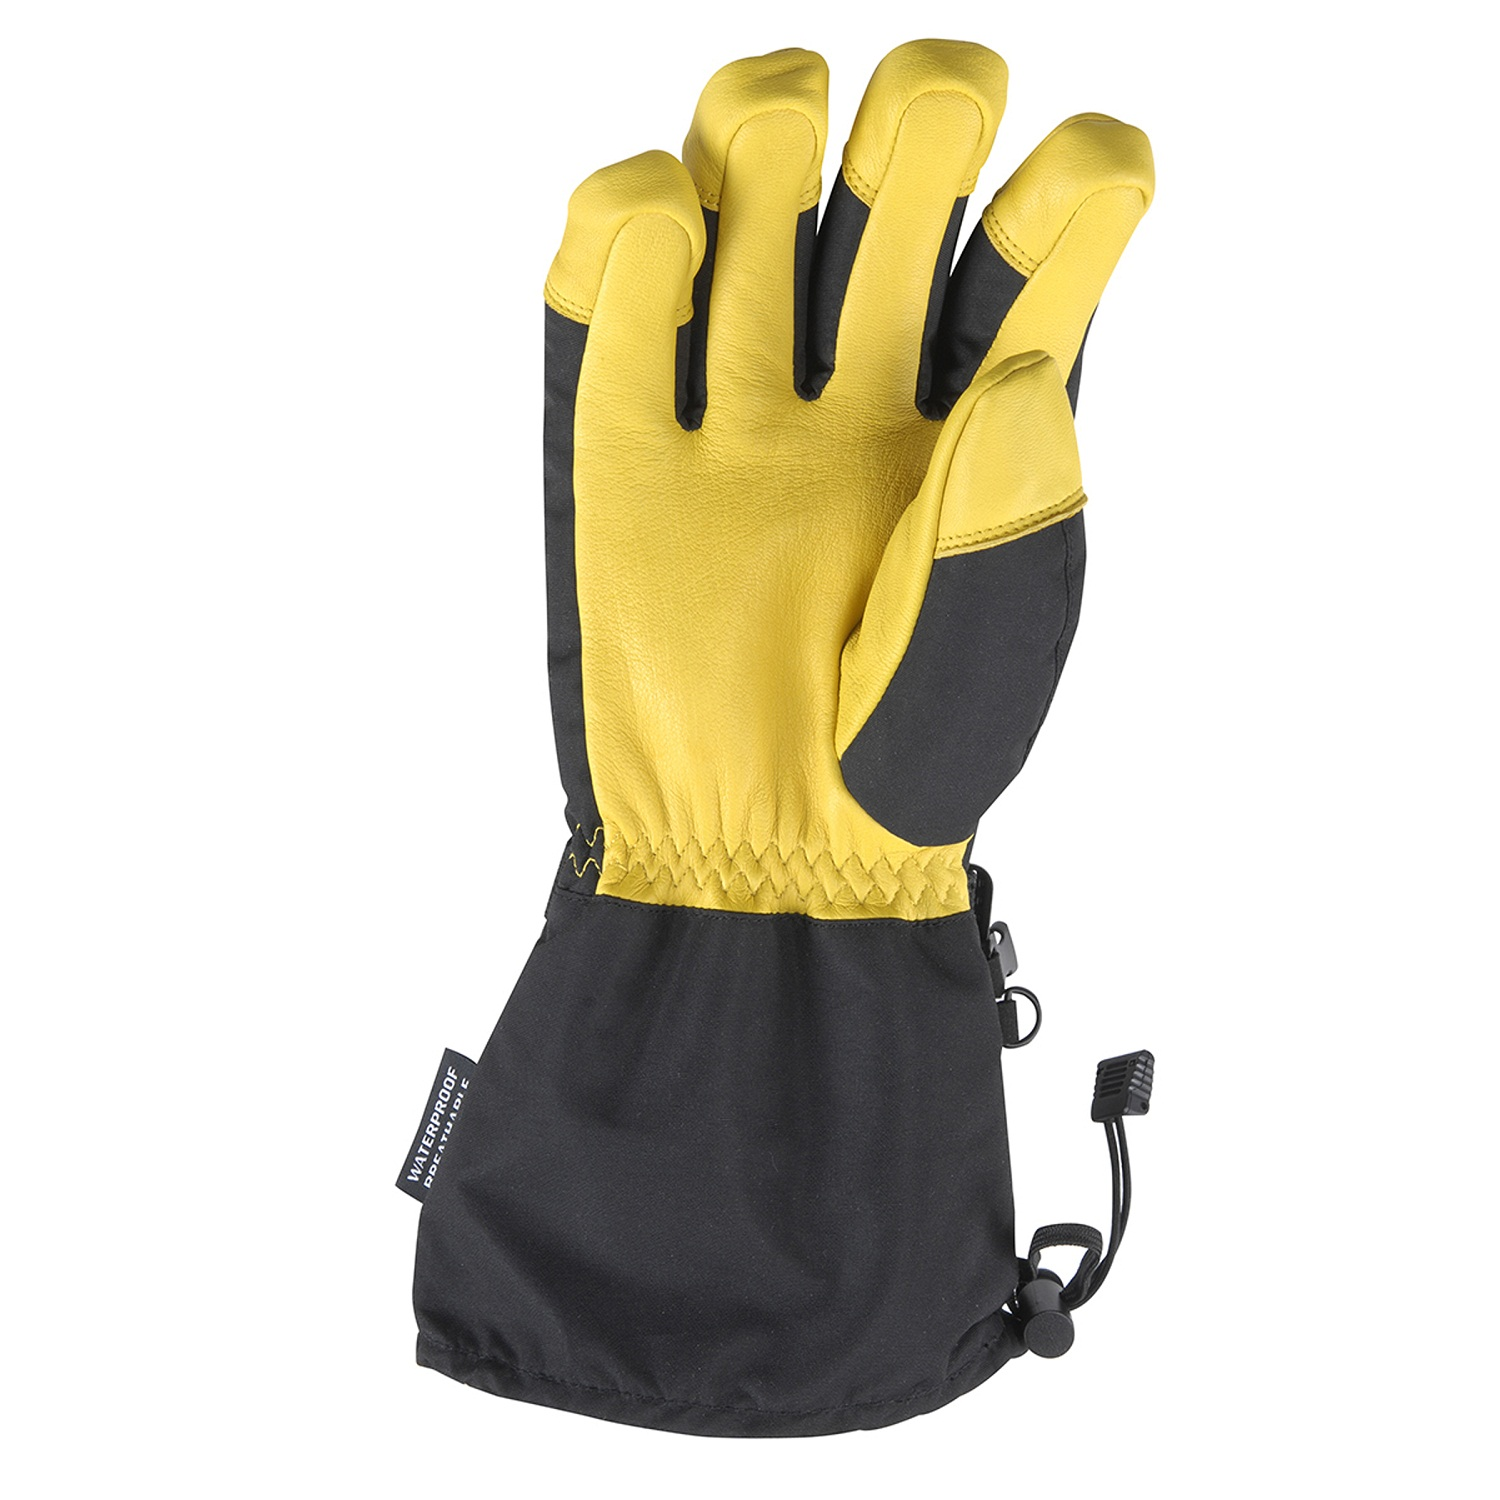 Wells Lamont ComfortHyde Men's Extended Cuff Waterproof Glove, Size Large PartNumber: 00647303000P KsnValue: 9141107 MfgPartNumber: 4011606